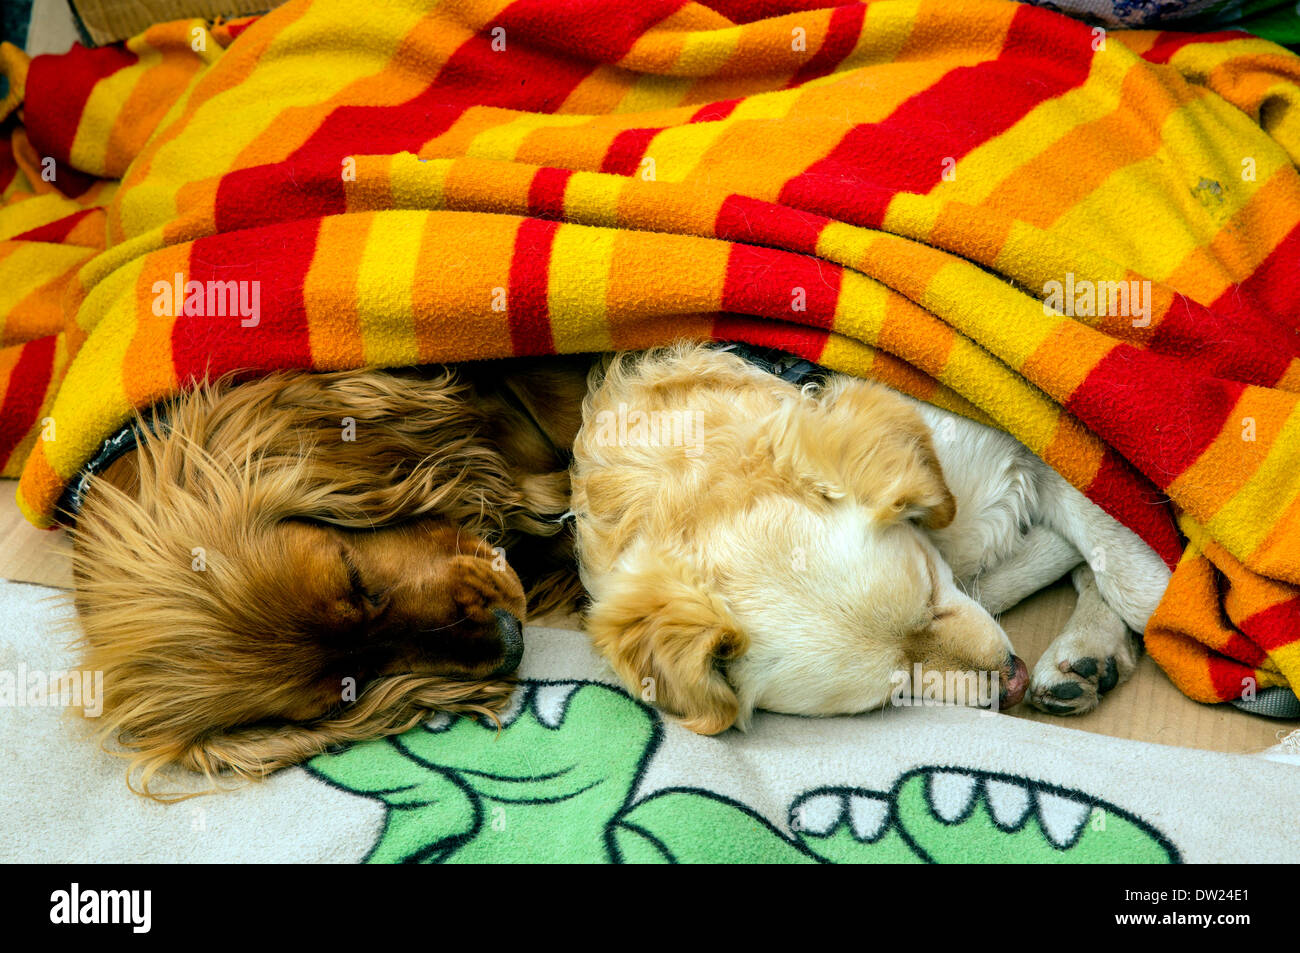 Two dogs sleeping under a blanket. Stock Photo